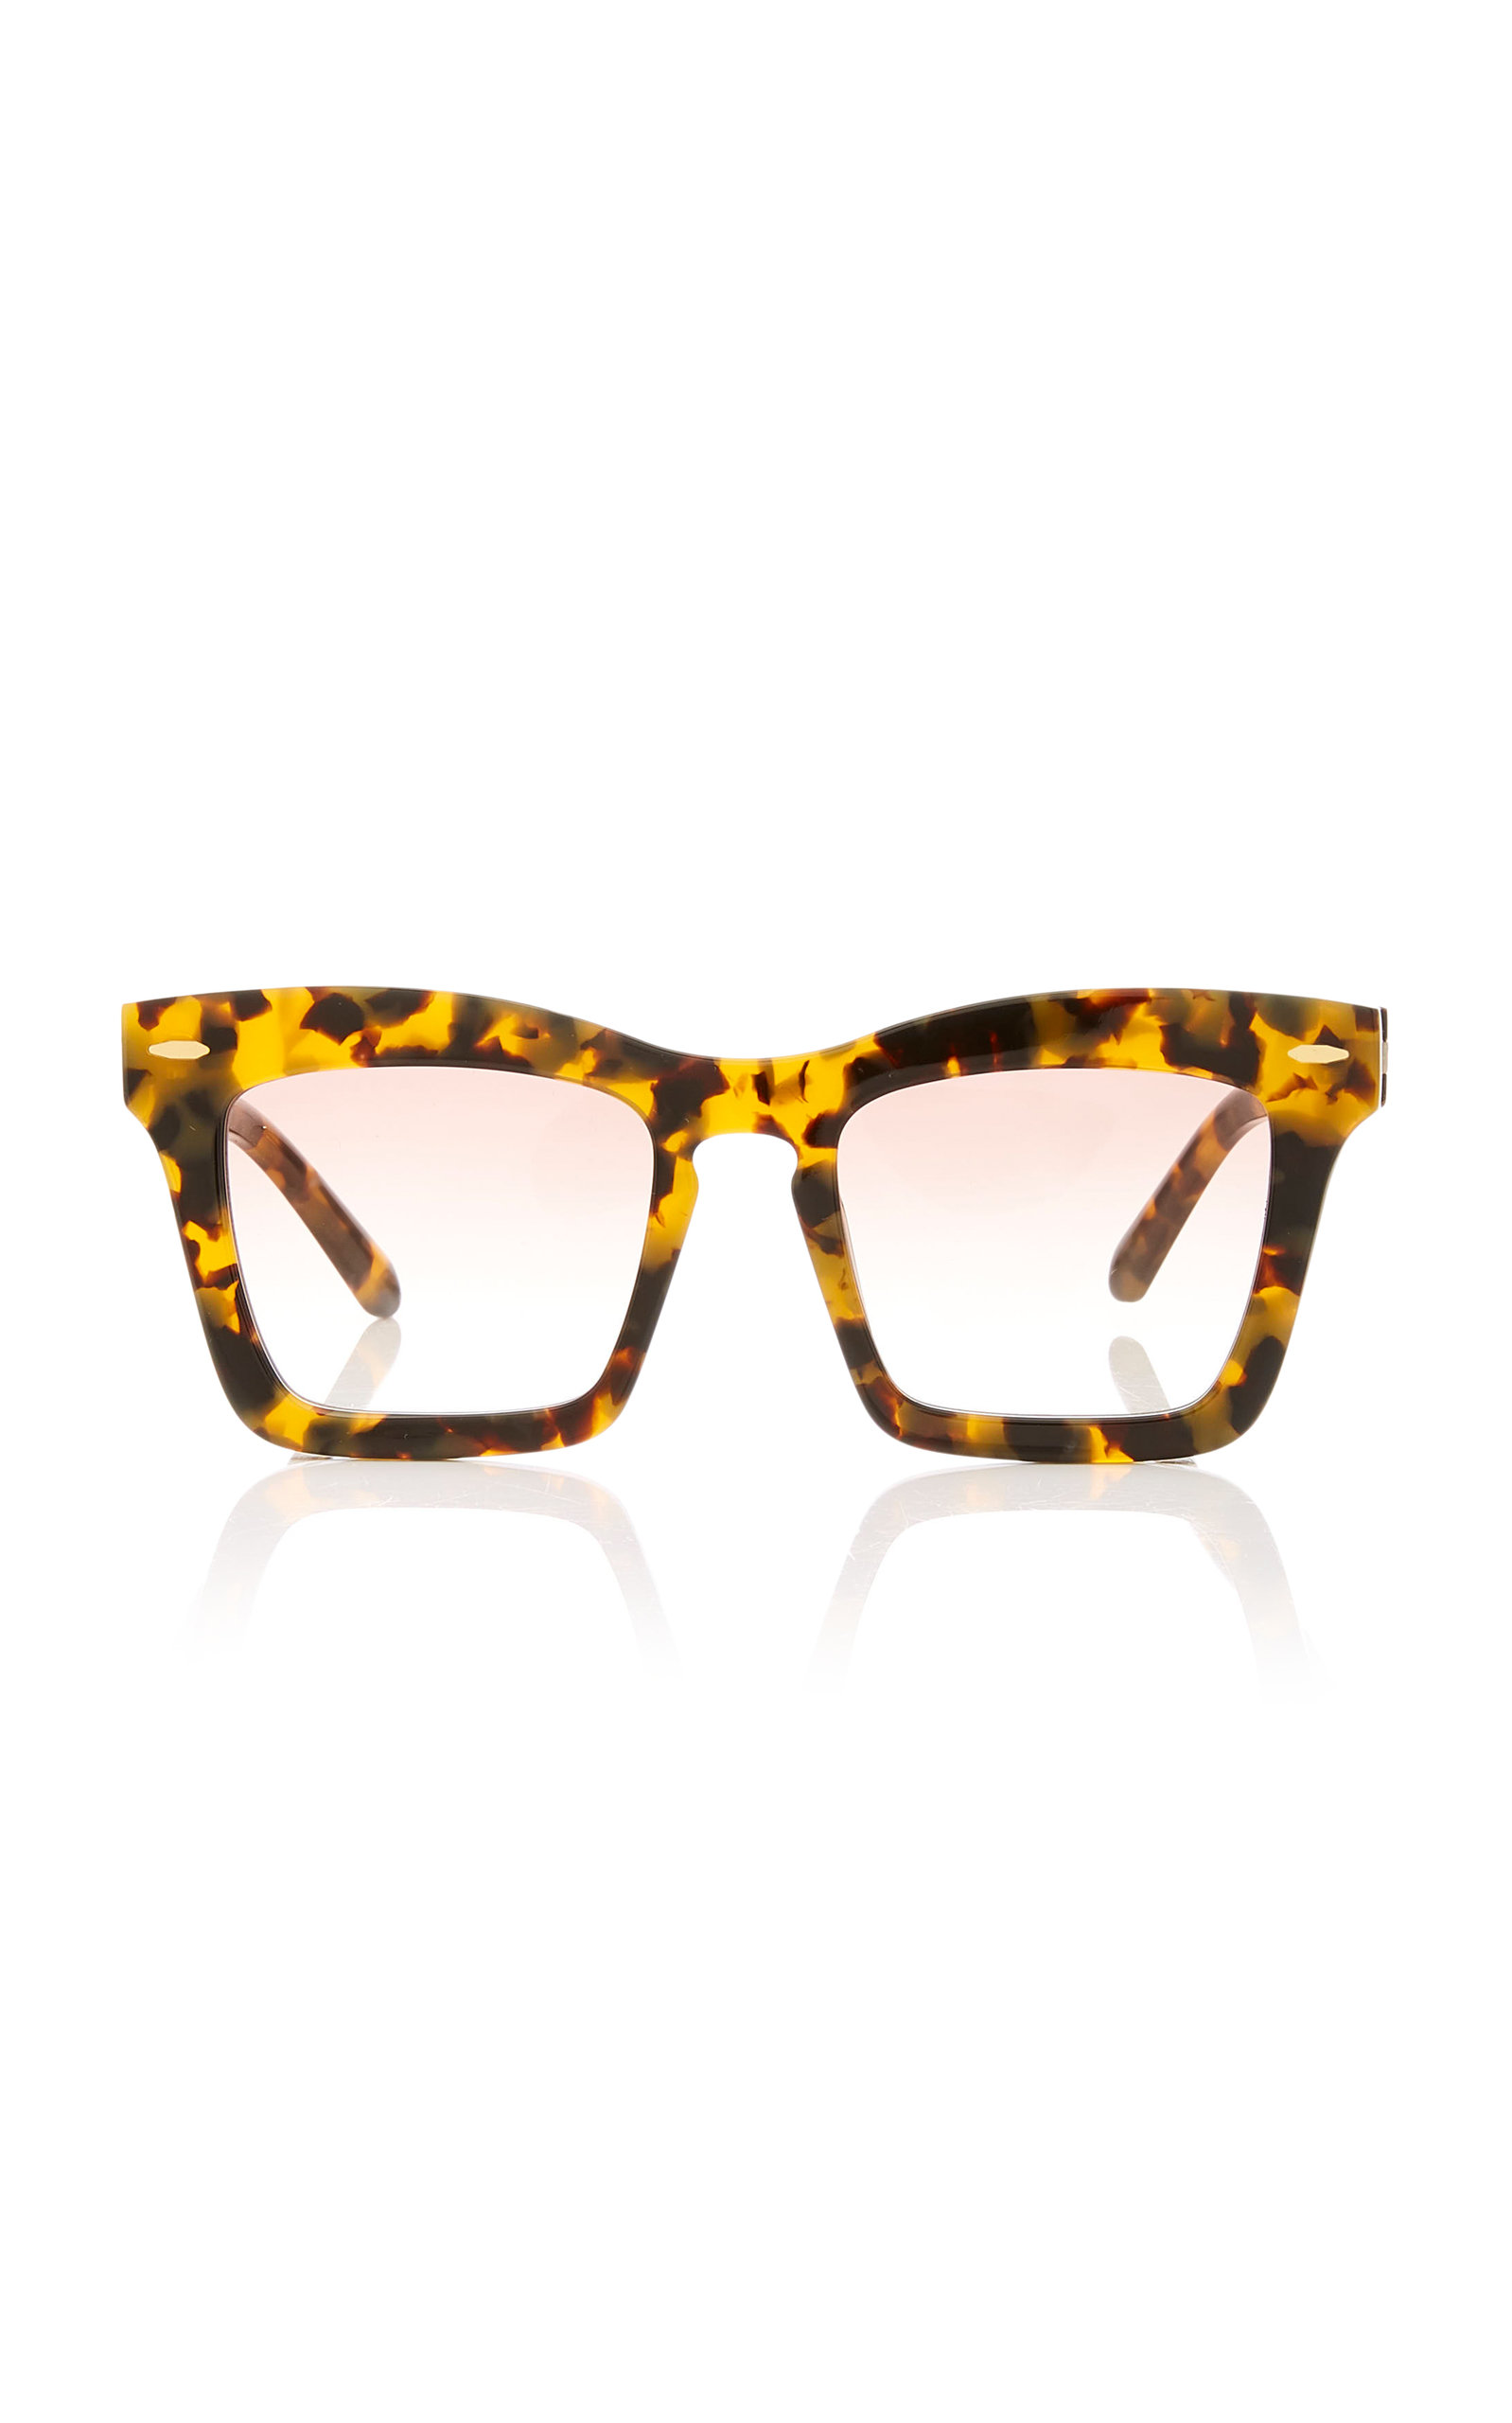 Karen Walker BANKS SQUARE ACETATE SUNGLASSES